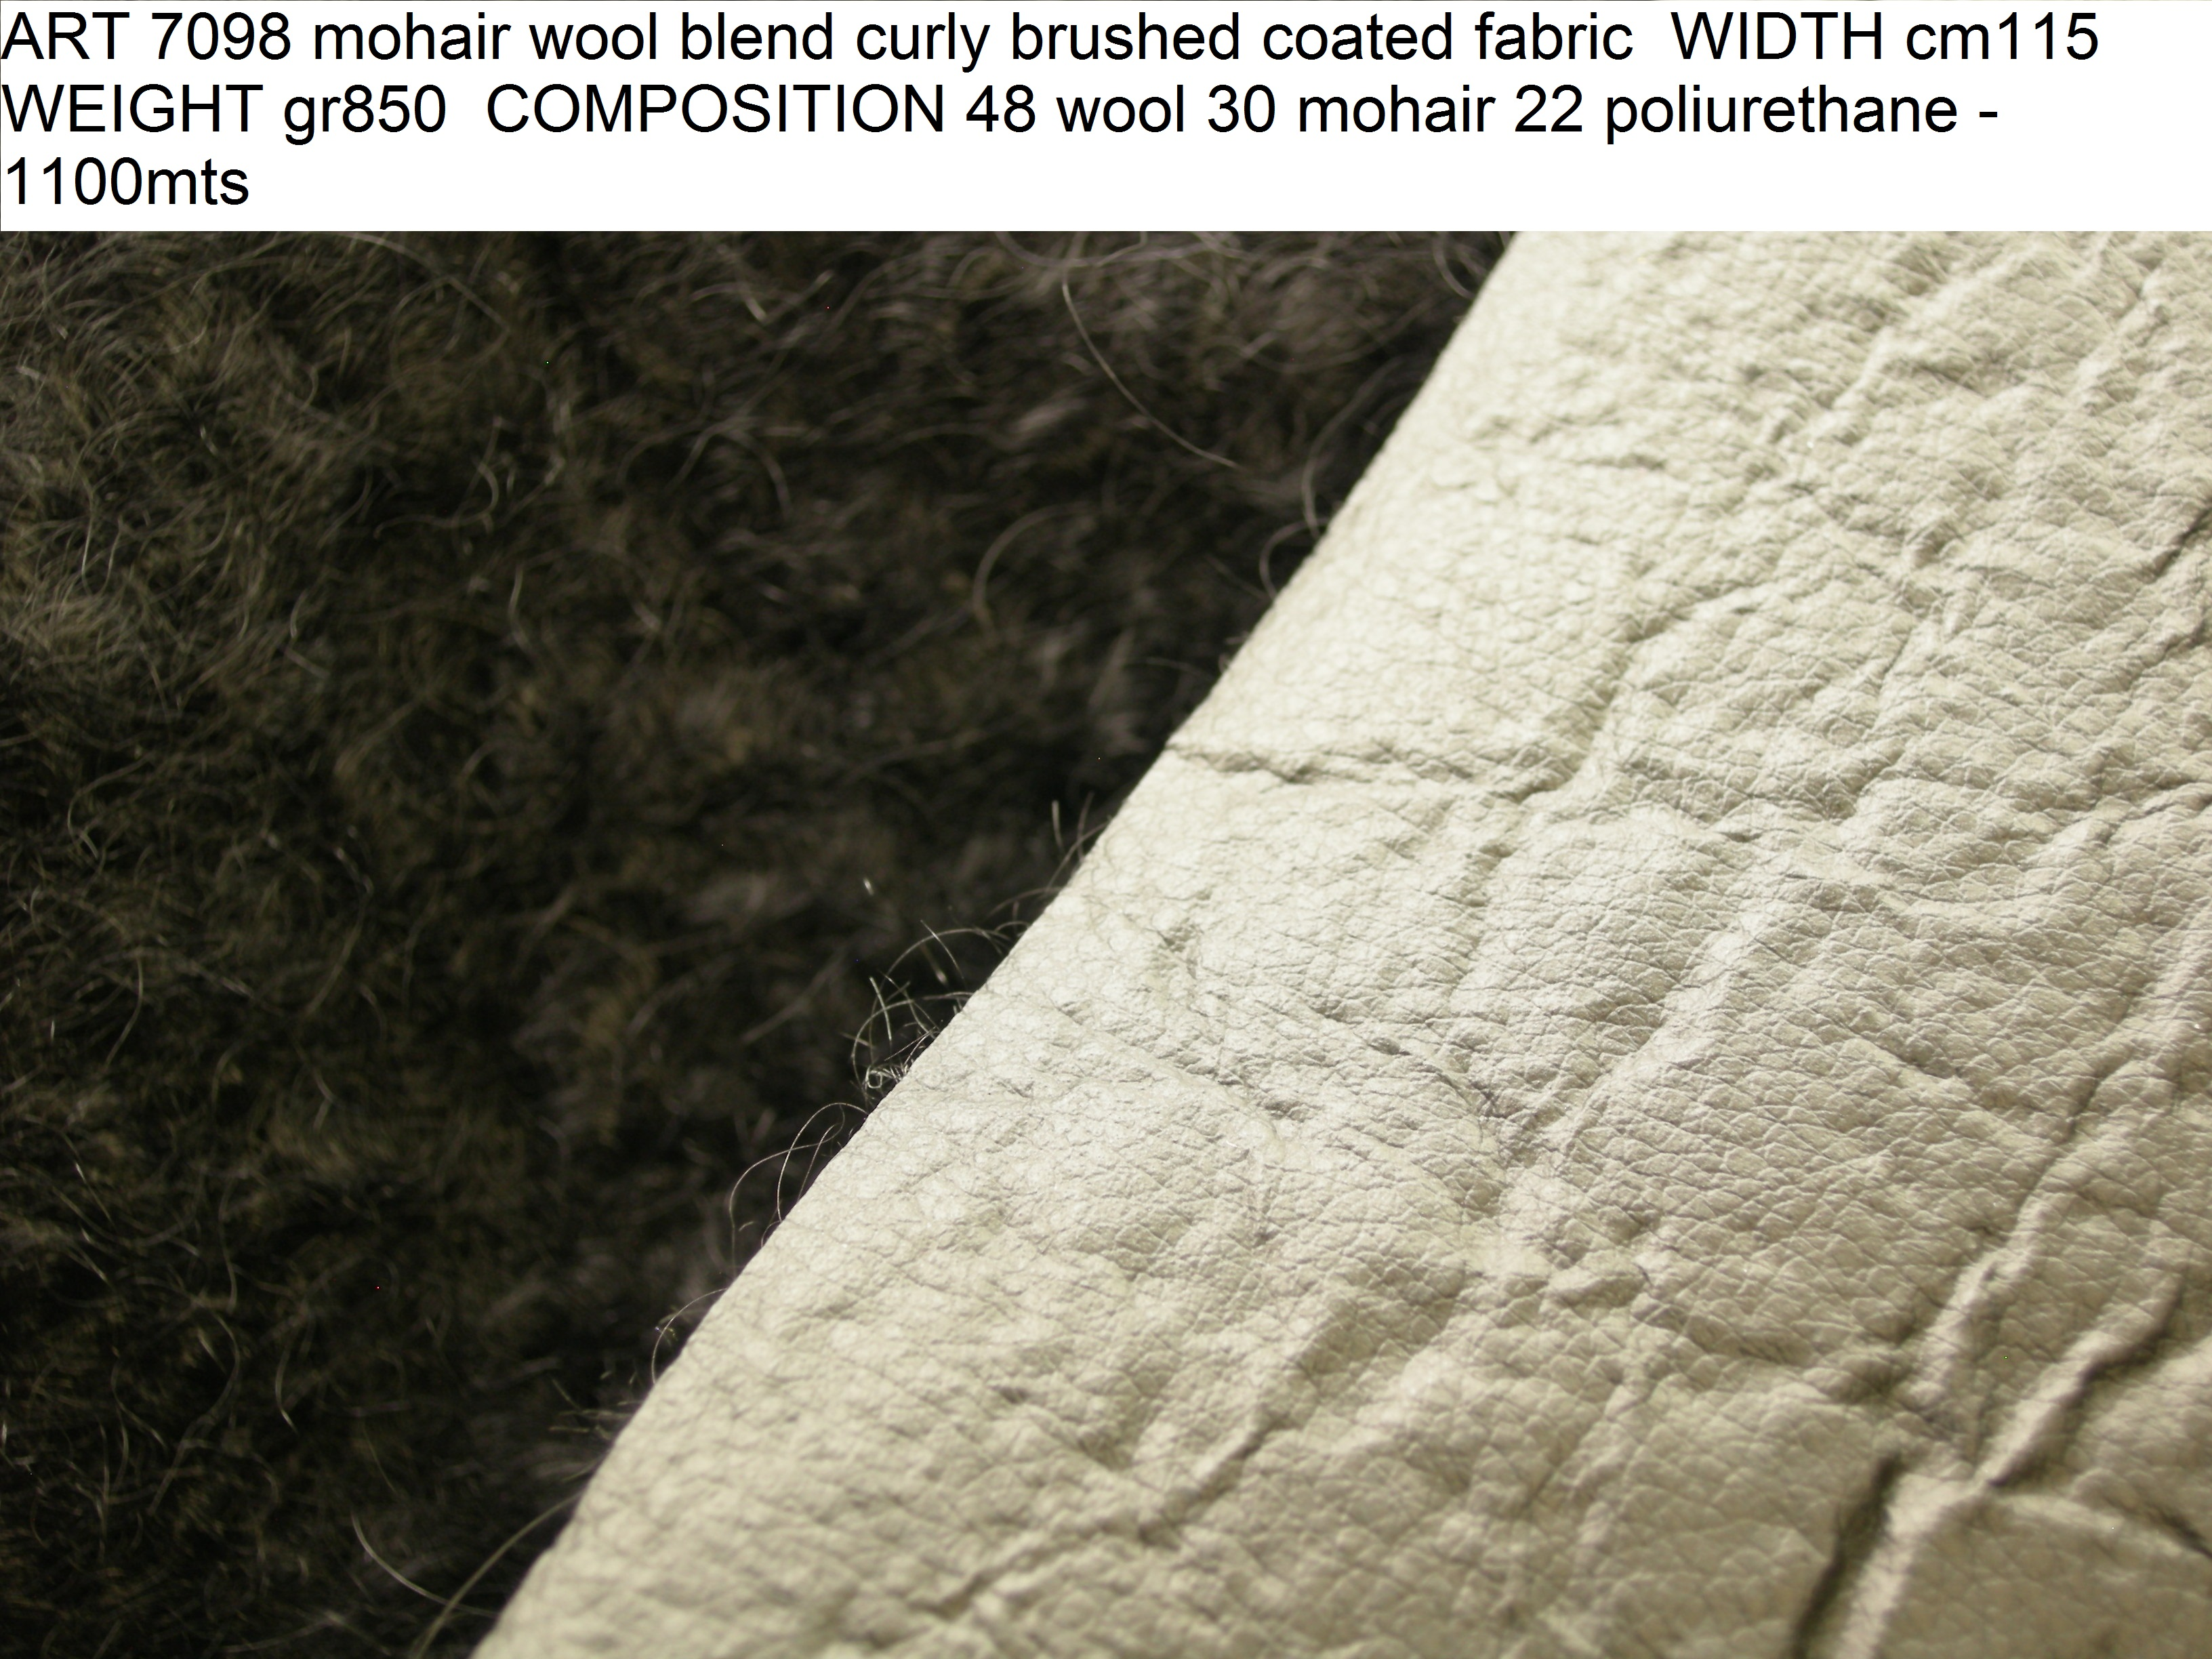 ART 7098 mohair wool blend curly brushed coated fabric WIDTH cm115 WEIGHT gr850 COMPOSITION 48 wool 30 mohair 22 poliurethane - 1100mts